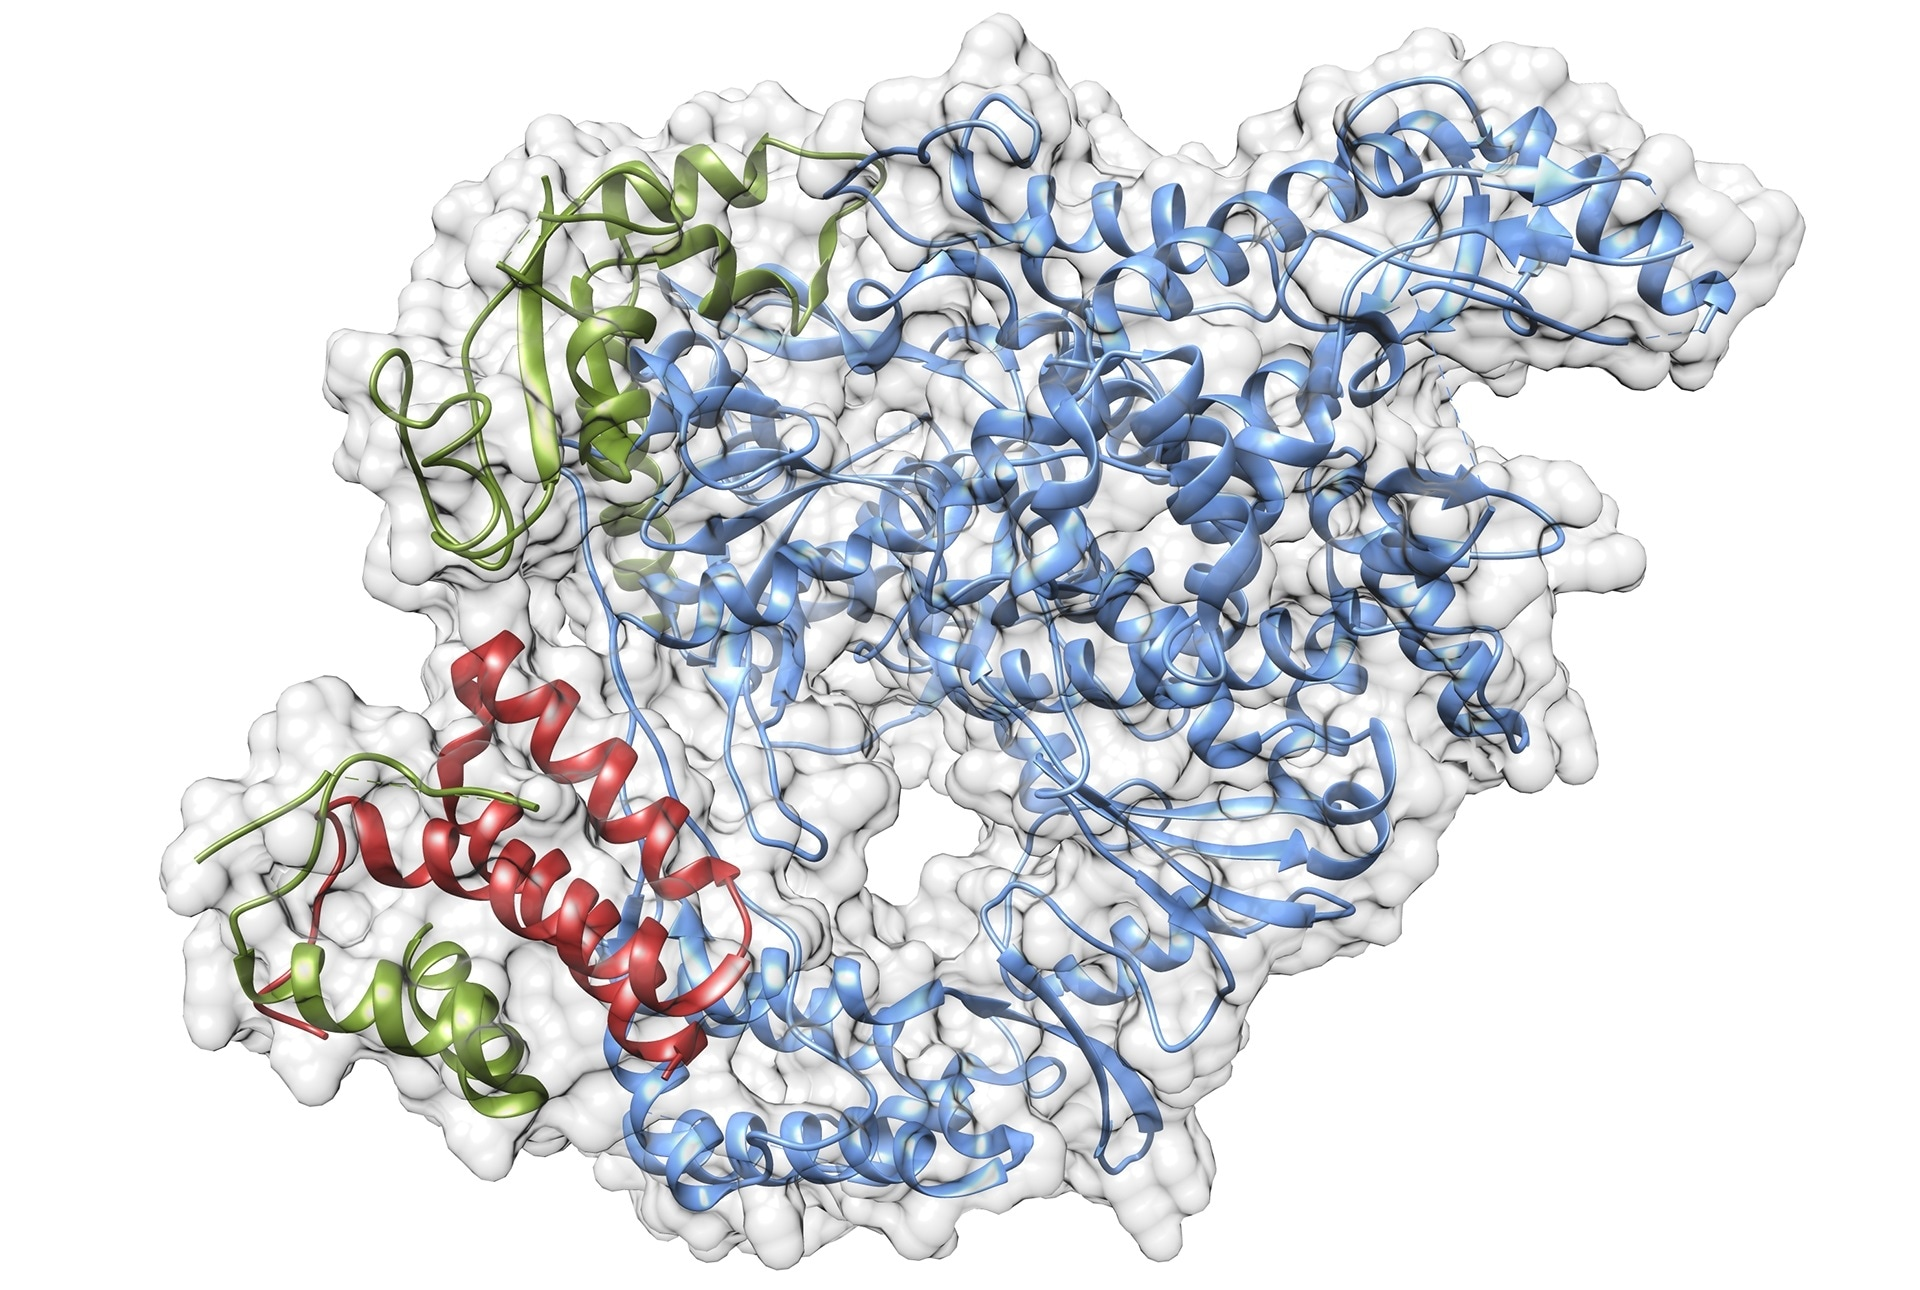 Scientists aim to understand the biology of SARS-CoV-2 virus to enable drug development